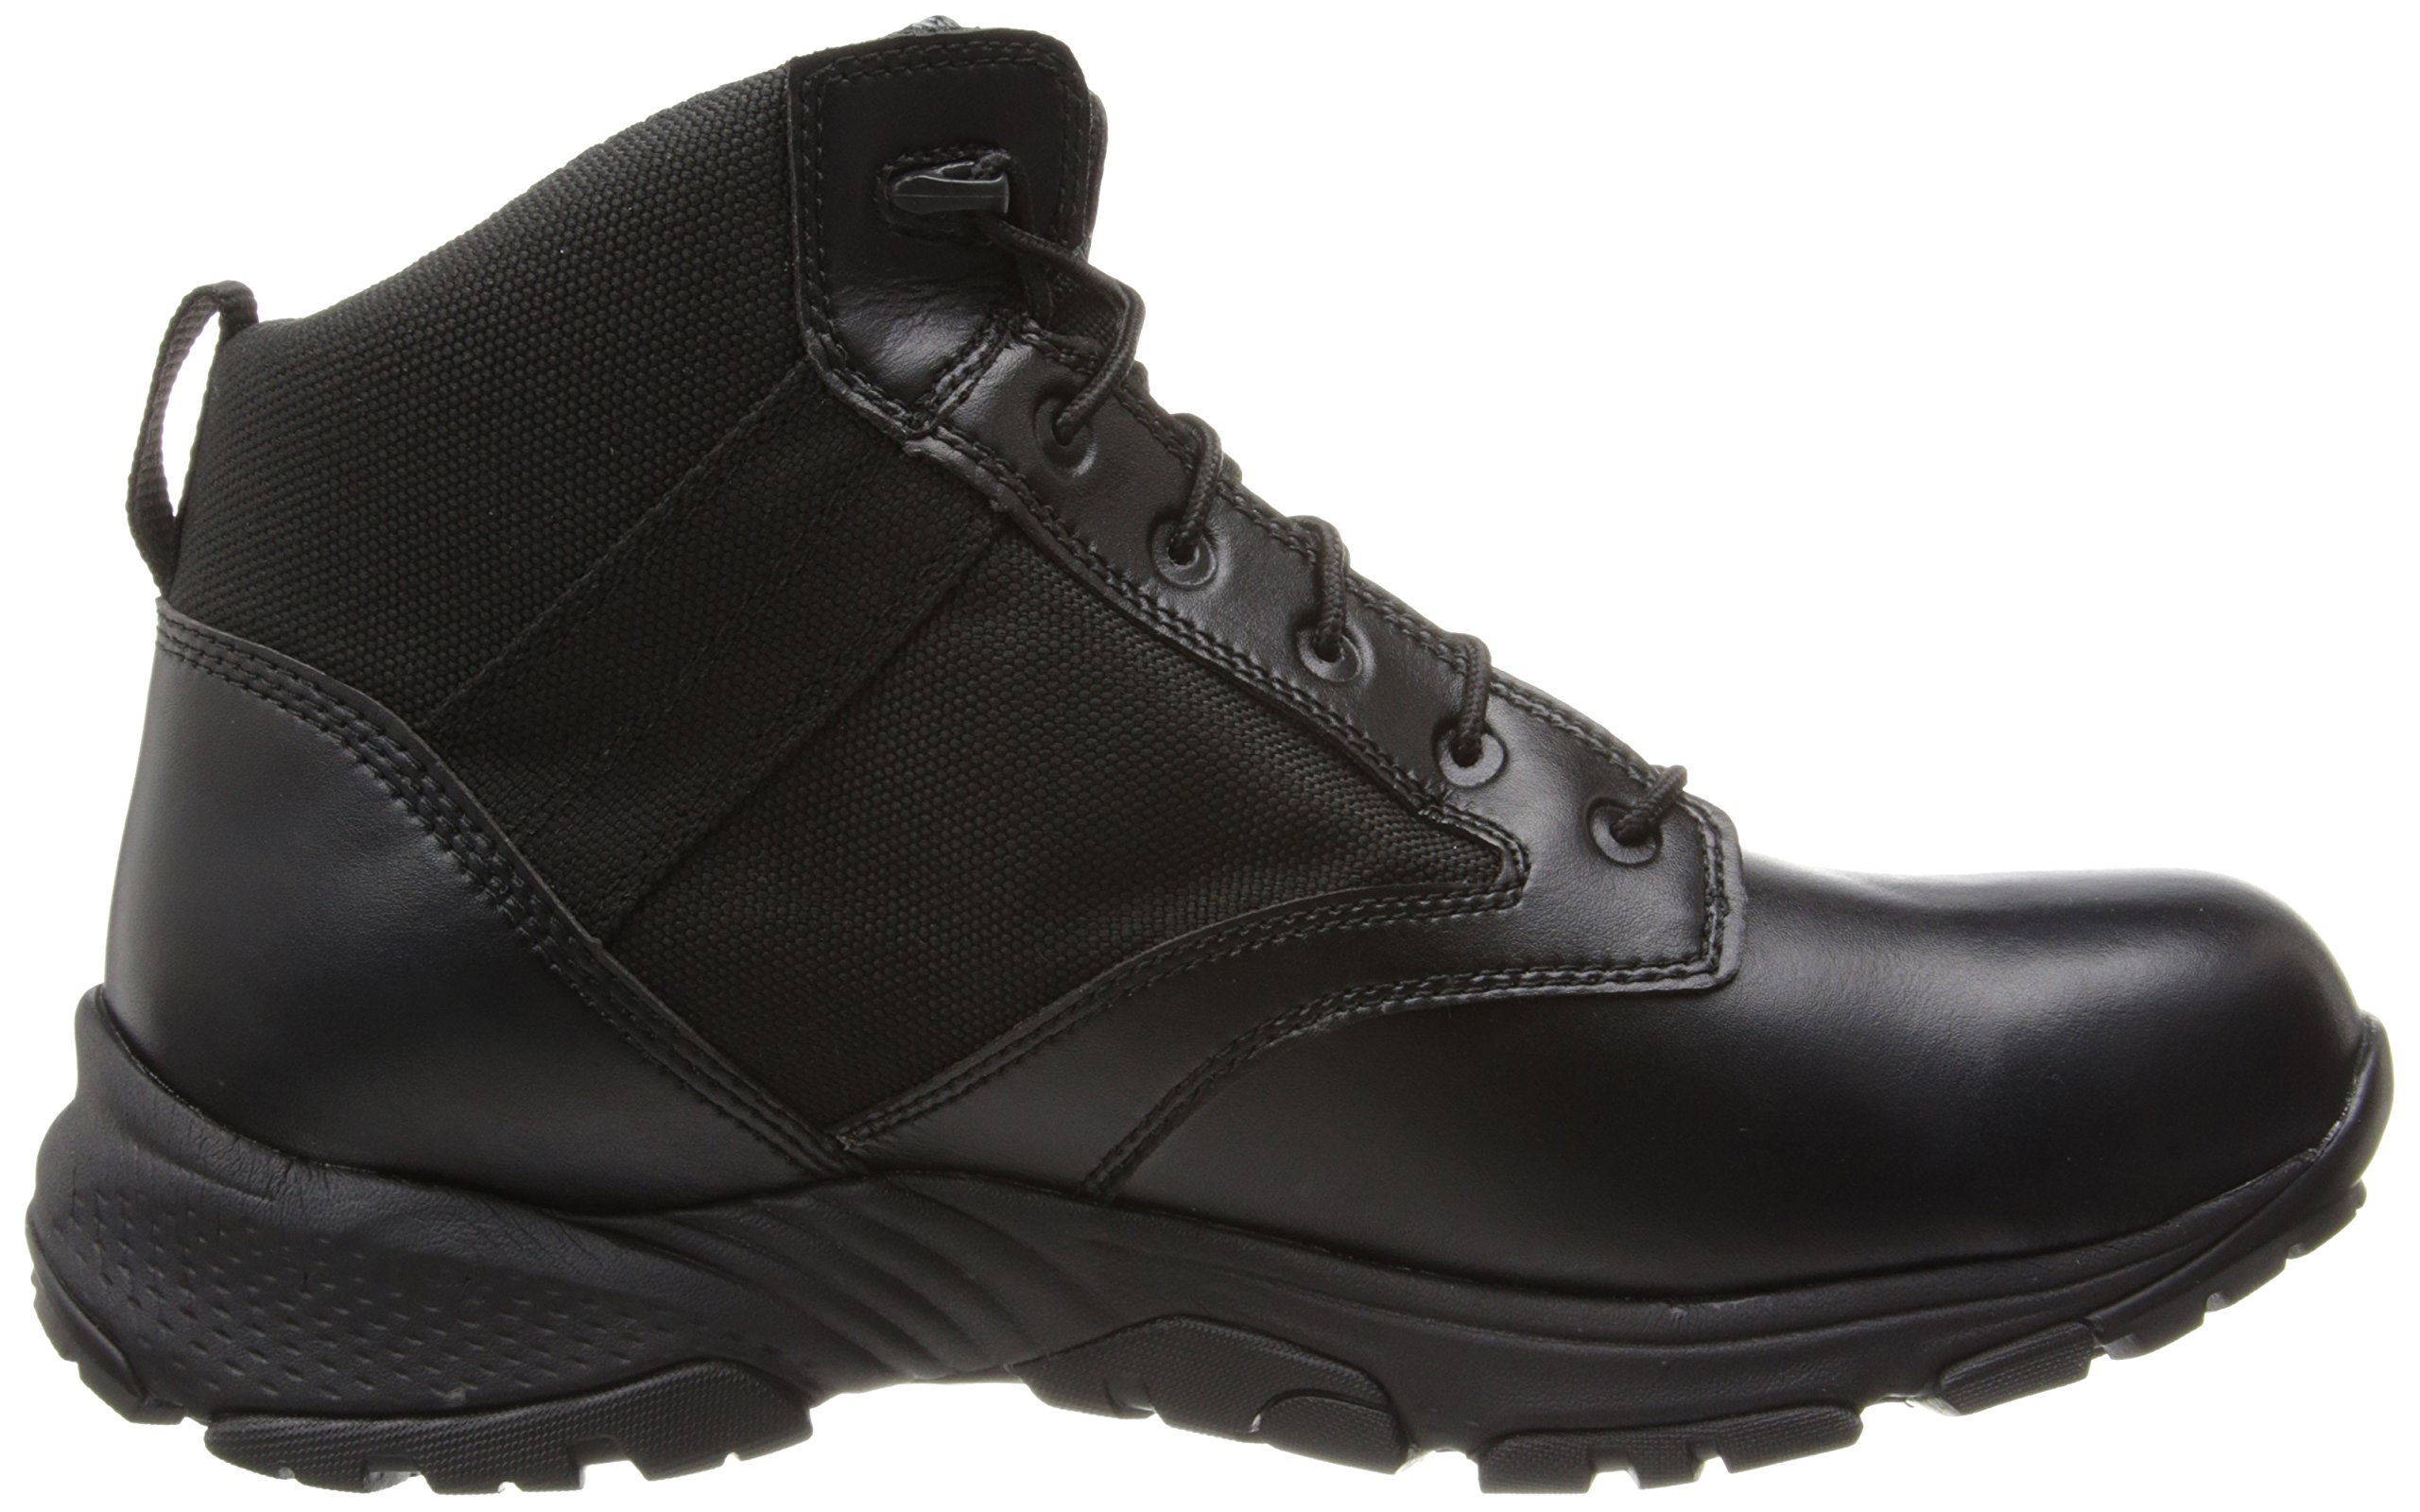 Timberland PRO Men's 5 Inch Valor Soft Toe Waterproof Duty Boot,Black Smooth With Textile,11.5 M US by Timberland PRO (Image #7)